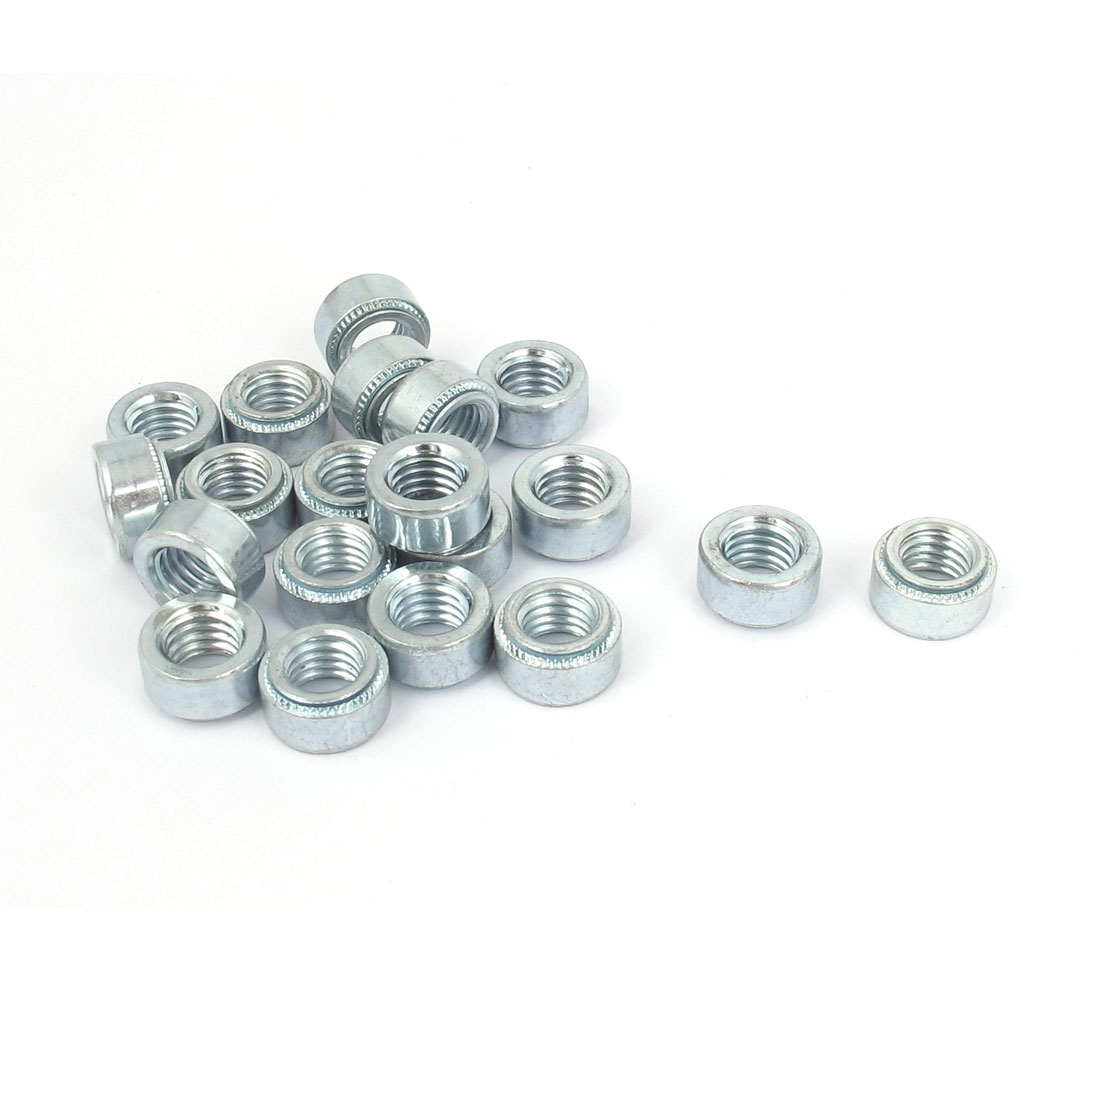 M8 Zinc Plated Self Clinching Rivet Nut Fastener 20pcs for 1mm Thin Plates